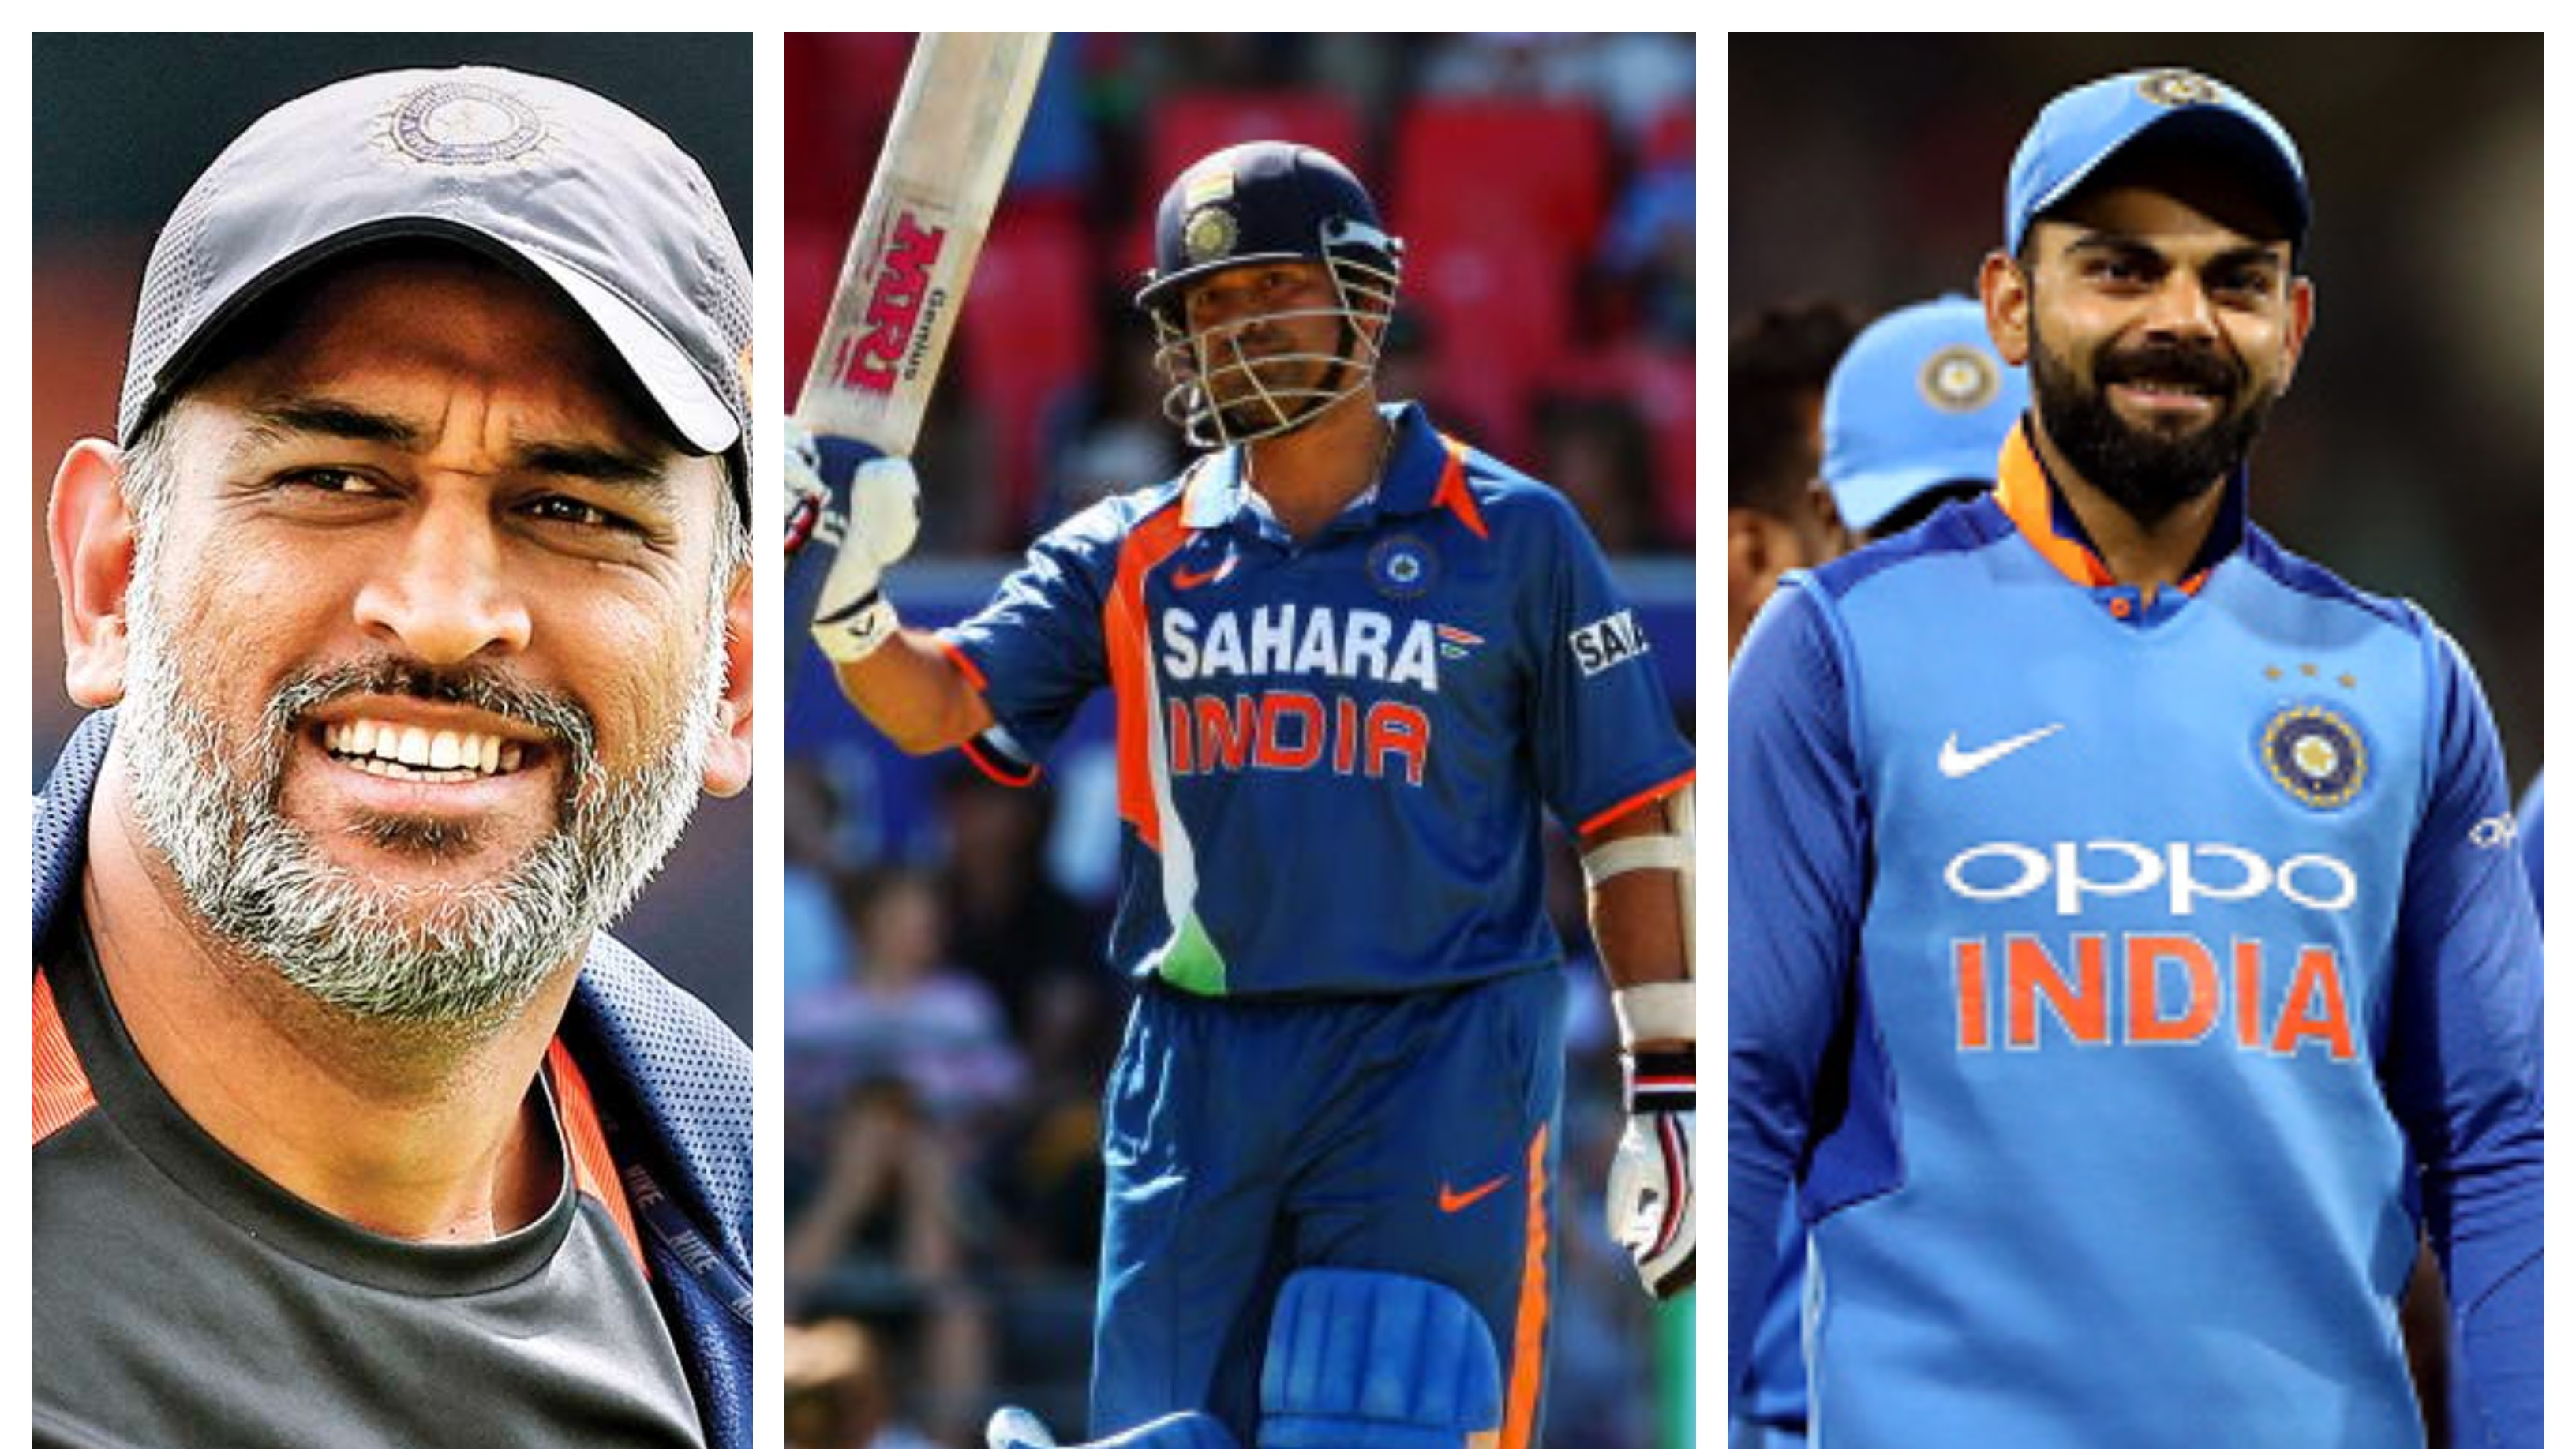 Kohli, Tendulkar or Dhoni? Mahela Jayawardene picks his GOAT